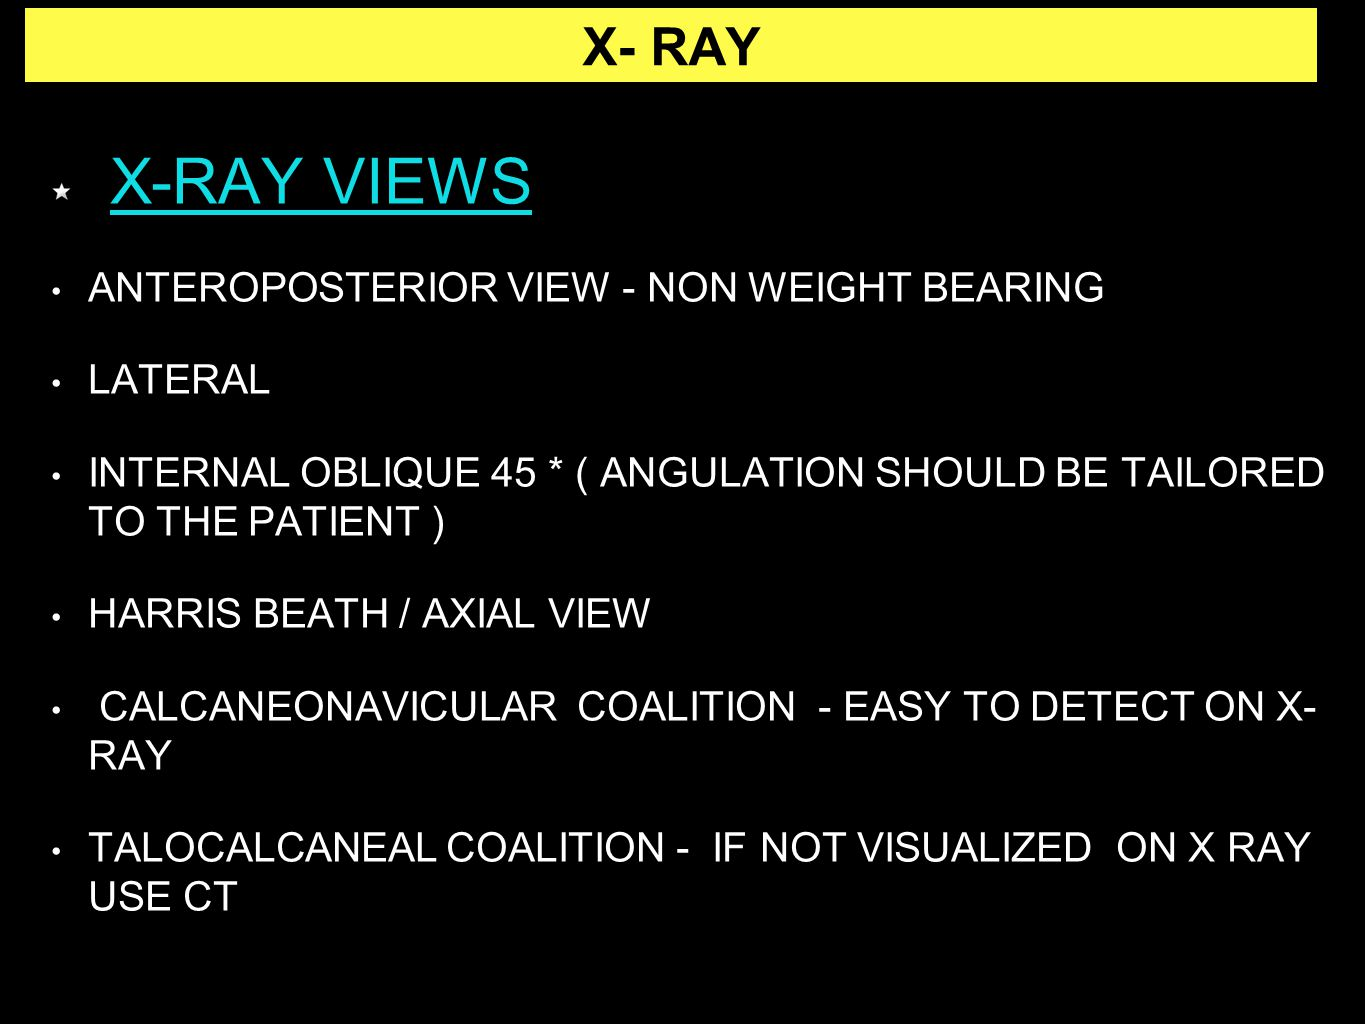 X-RAY VIEWS ANTEROPOSTERIOR VIEW - NON WEIGHT BEARING LATERAL INTERNAL OBLIQUE 45 * ( ANGULATION SHOULD BE TAILORED TO THE PATIENT ) HARRIS BEATH / AX